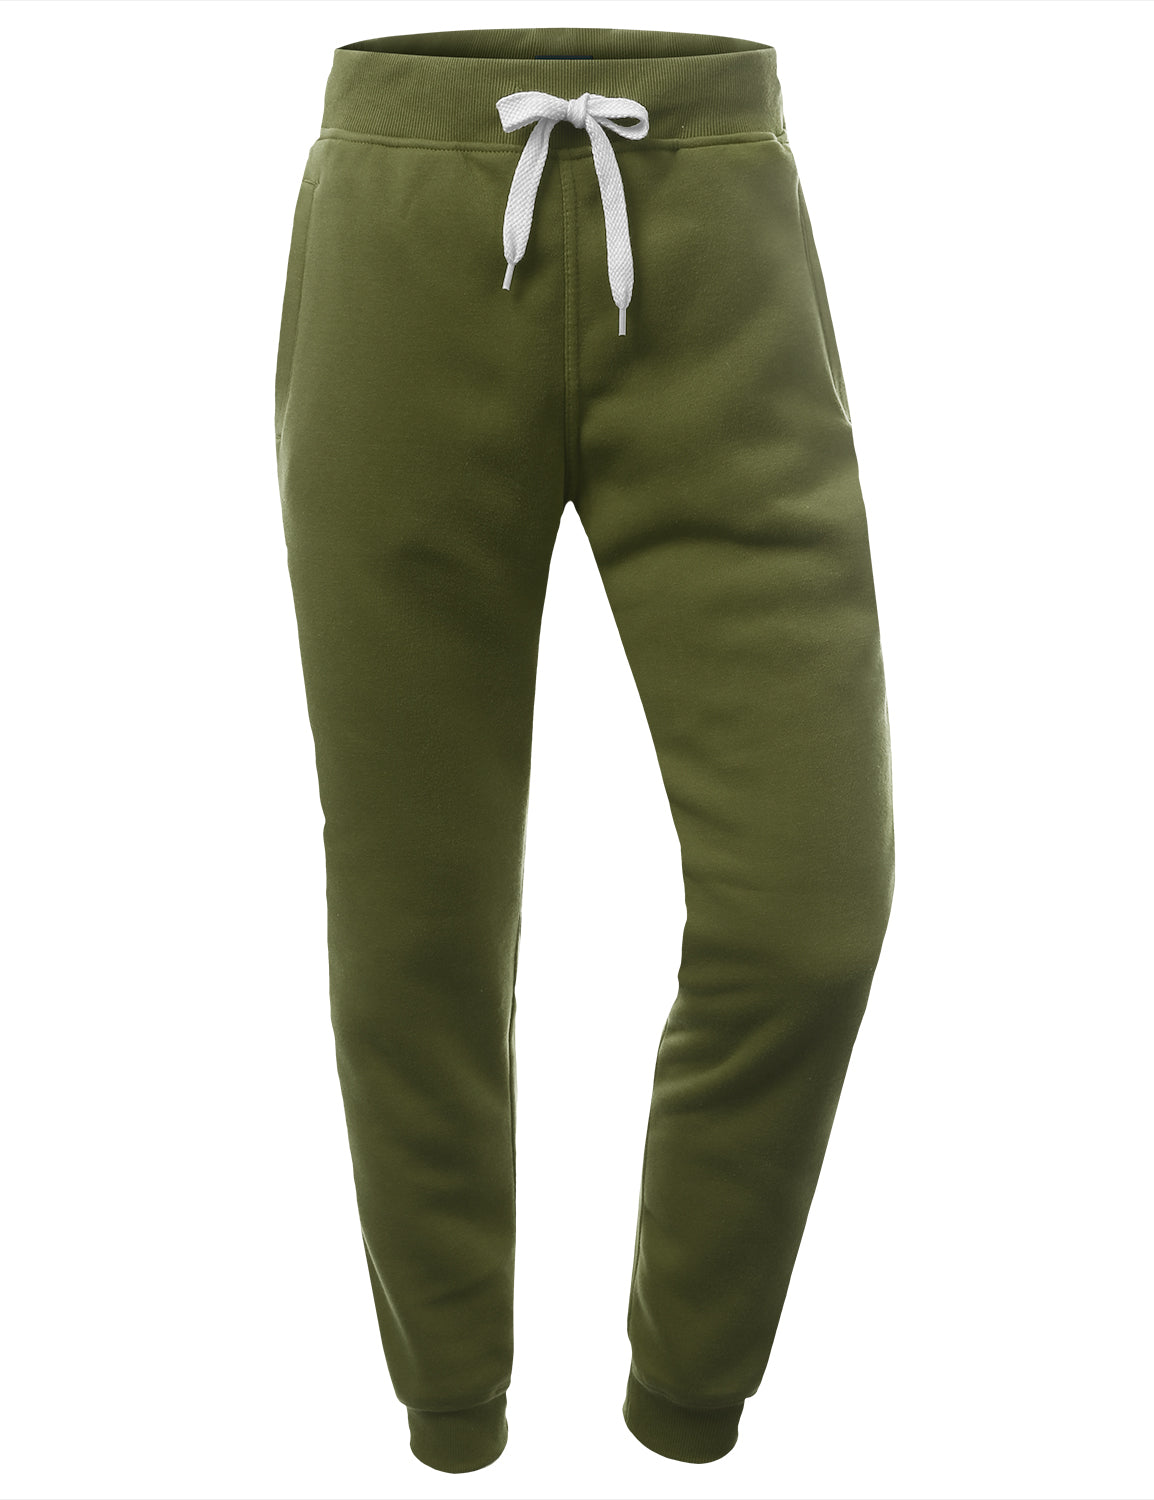 LTOLIVE Basic Fleece Jogger Sweatpants - URBANCREWS